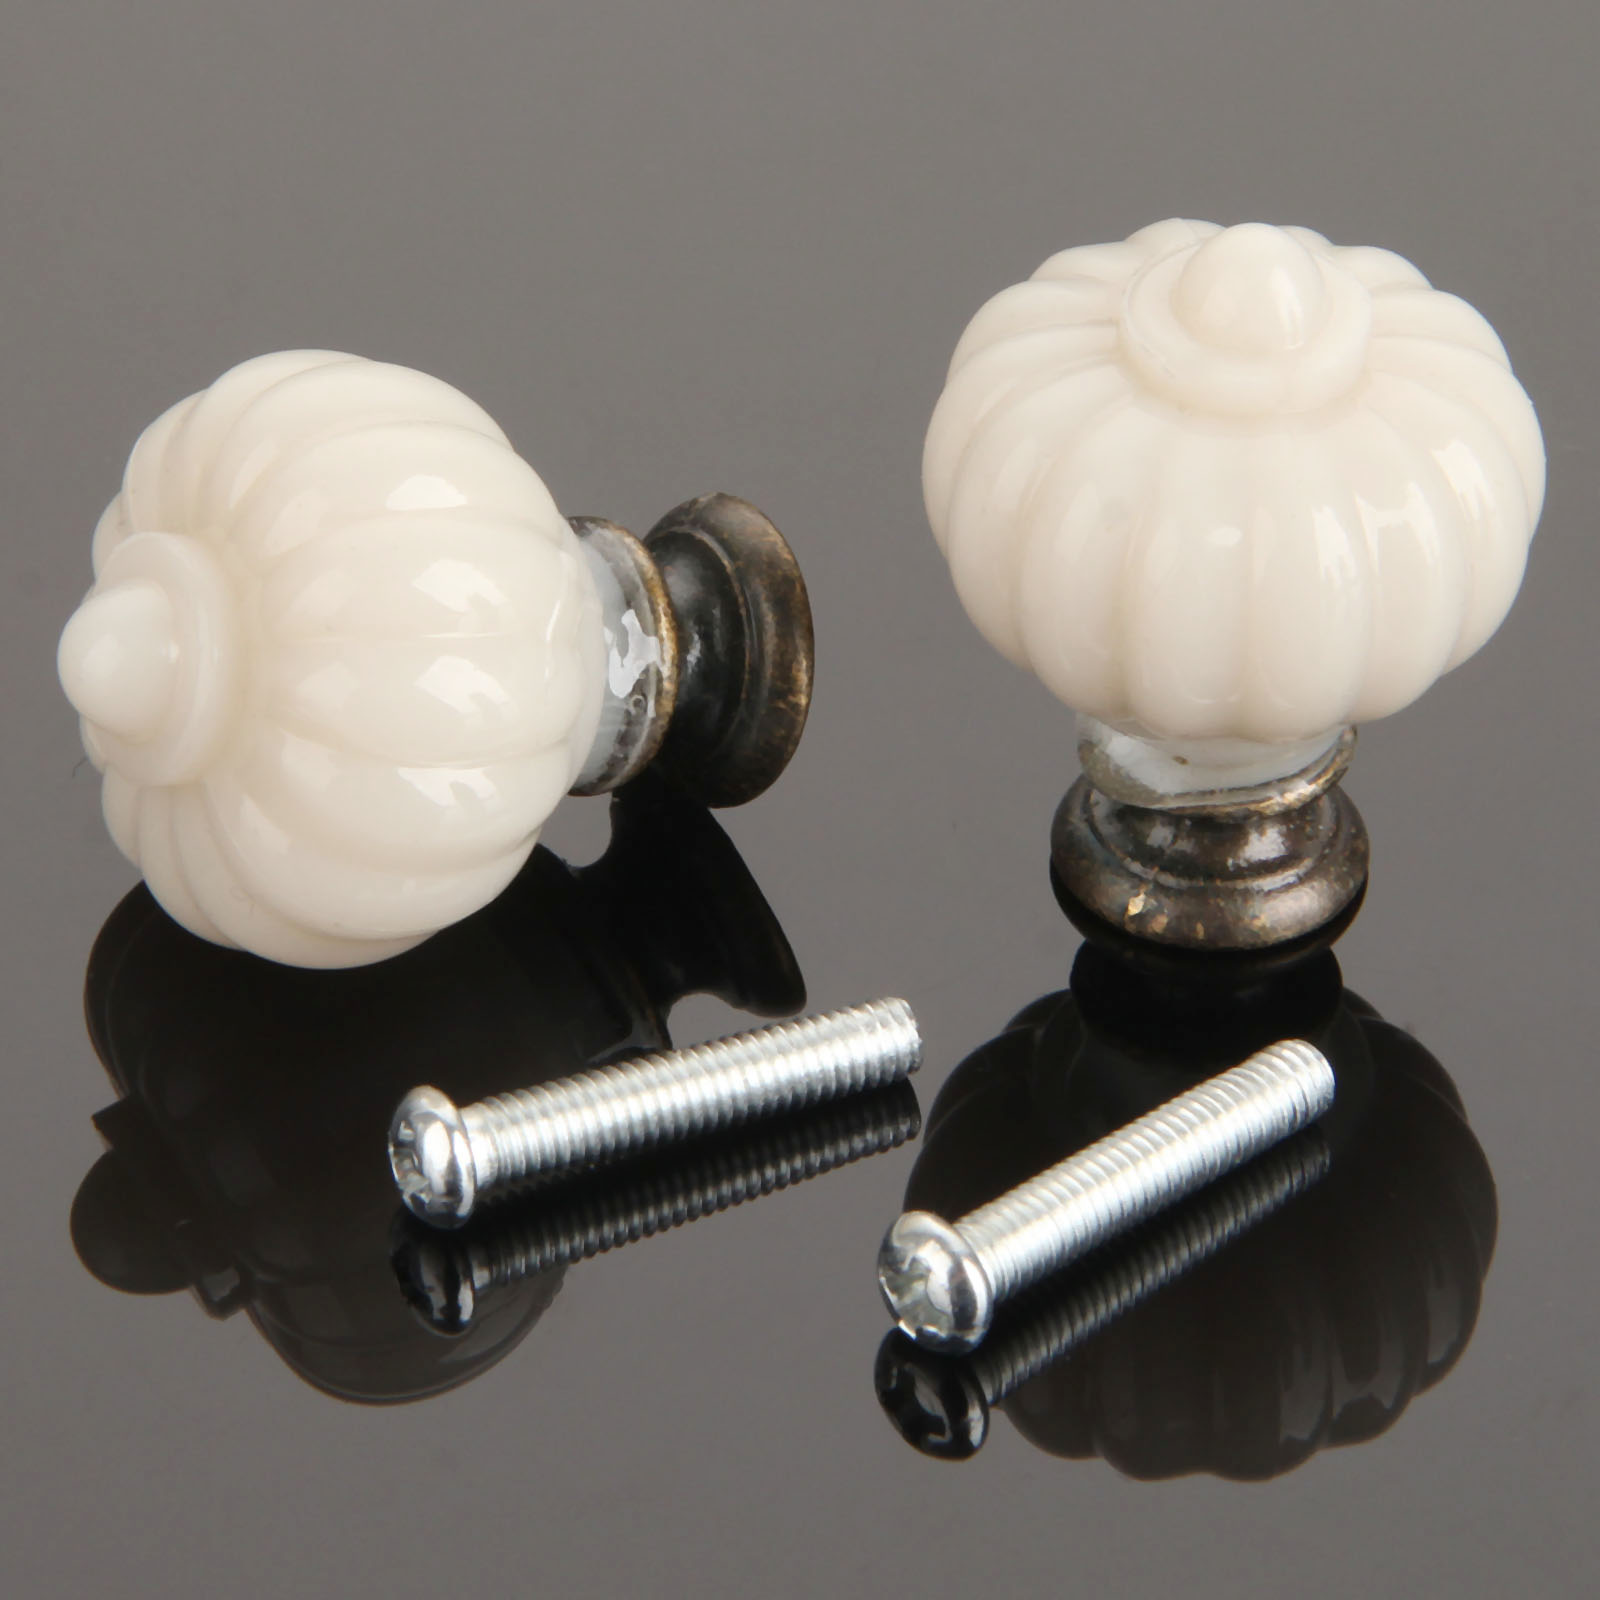 1Pc Furniture Handles Pumpkin Lantern Wardrobe Door Drawer Pulls Handles Kitchen Cupboard Handle Cabinet Knobs and Handles furniture handles wardrobe door pulls dresser drawer handles kitchen cupboard handle cabinet knobs and handles 64mm 96mm 128mm